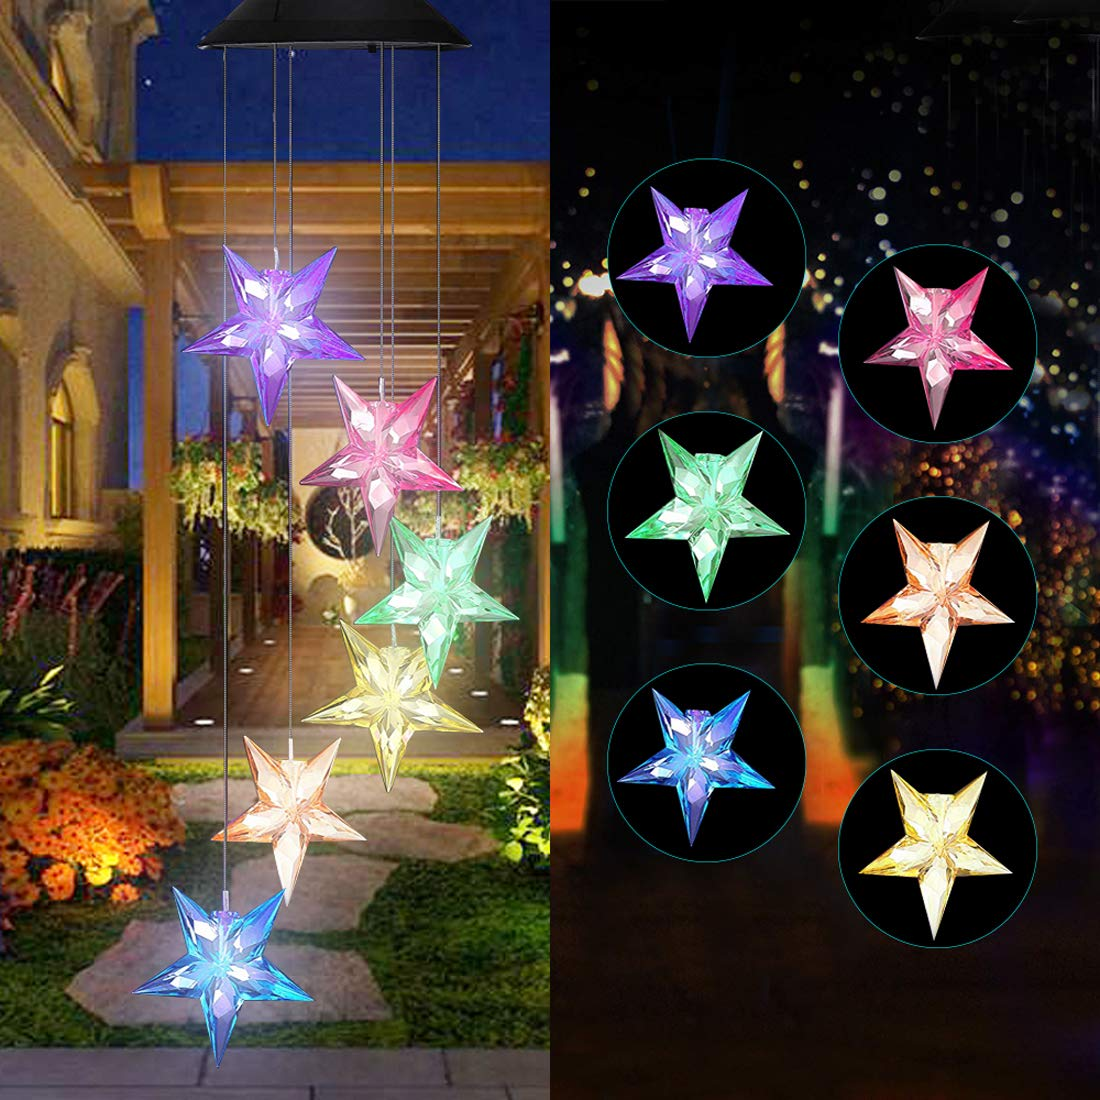 Vinkki Wind Chime Color Changing Solar Light Blue Star LED Wind Chime Wind Mobile Portable Waterproof Outdoor Decorative Romantic Wind Bell Light for Patio Yard Garden Home by Vinkki